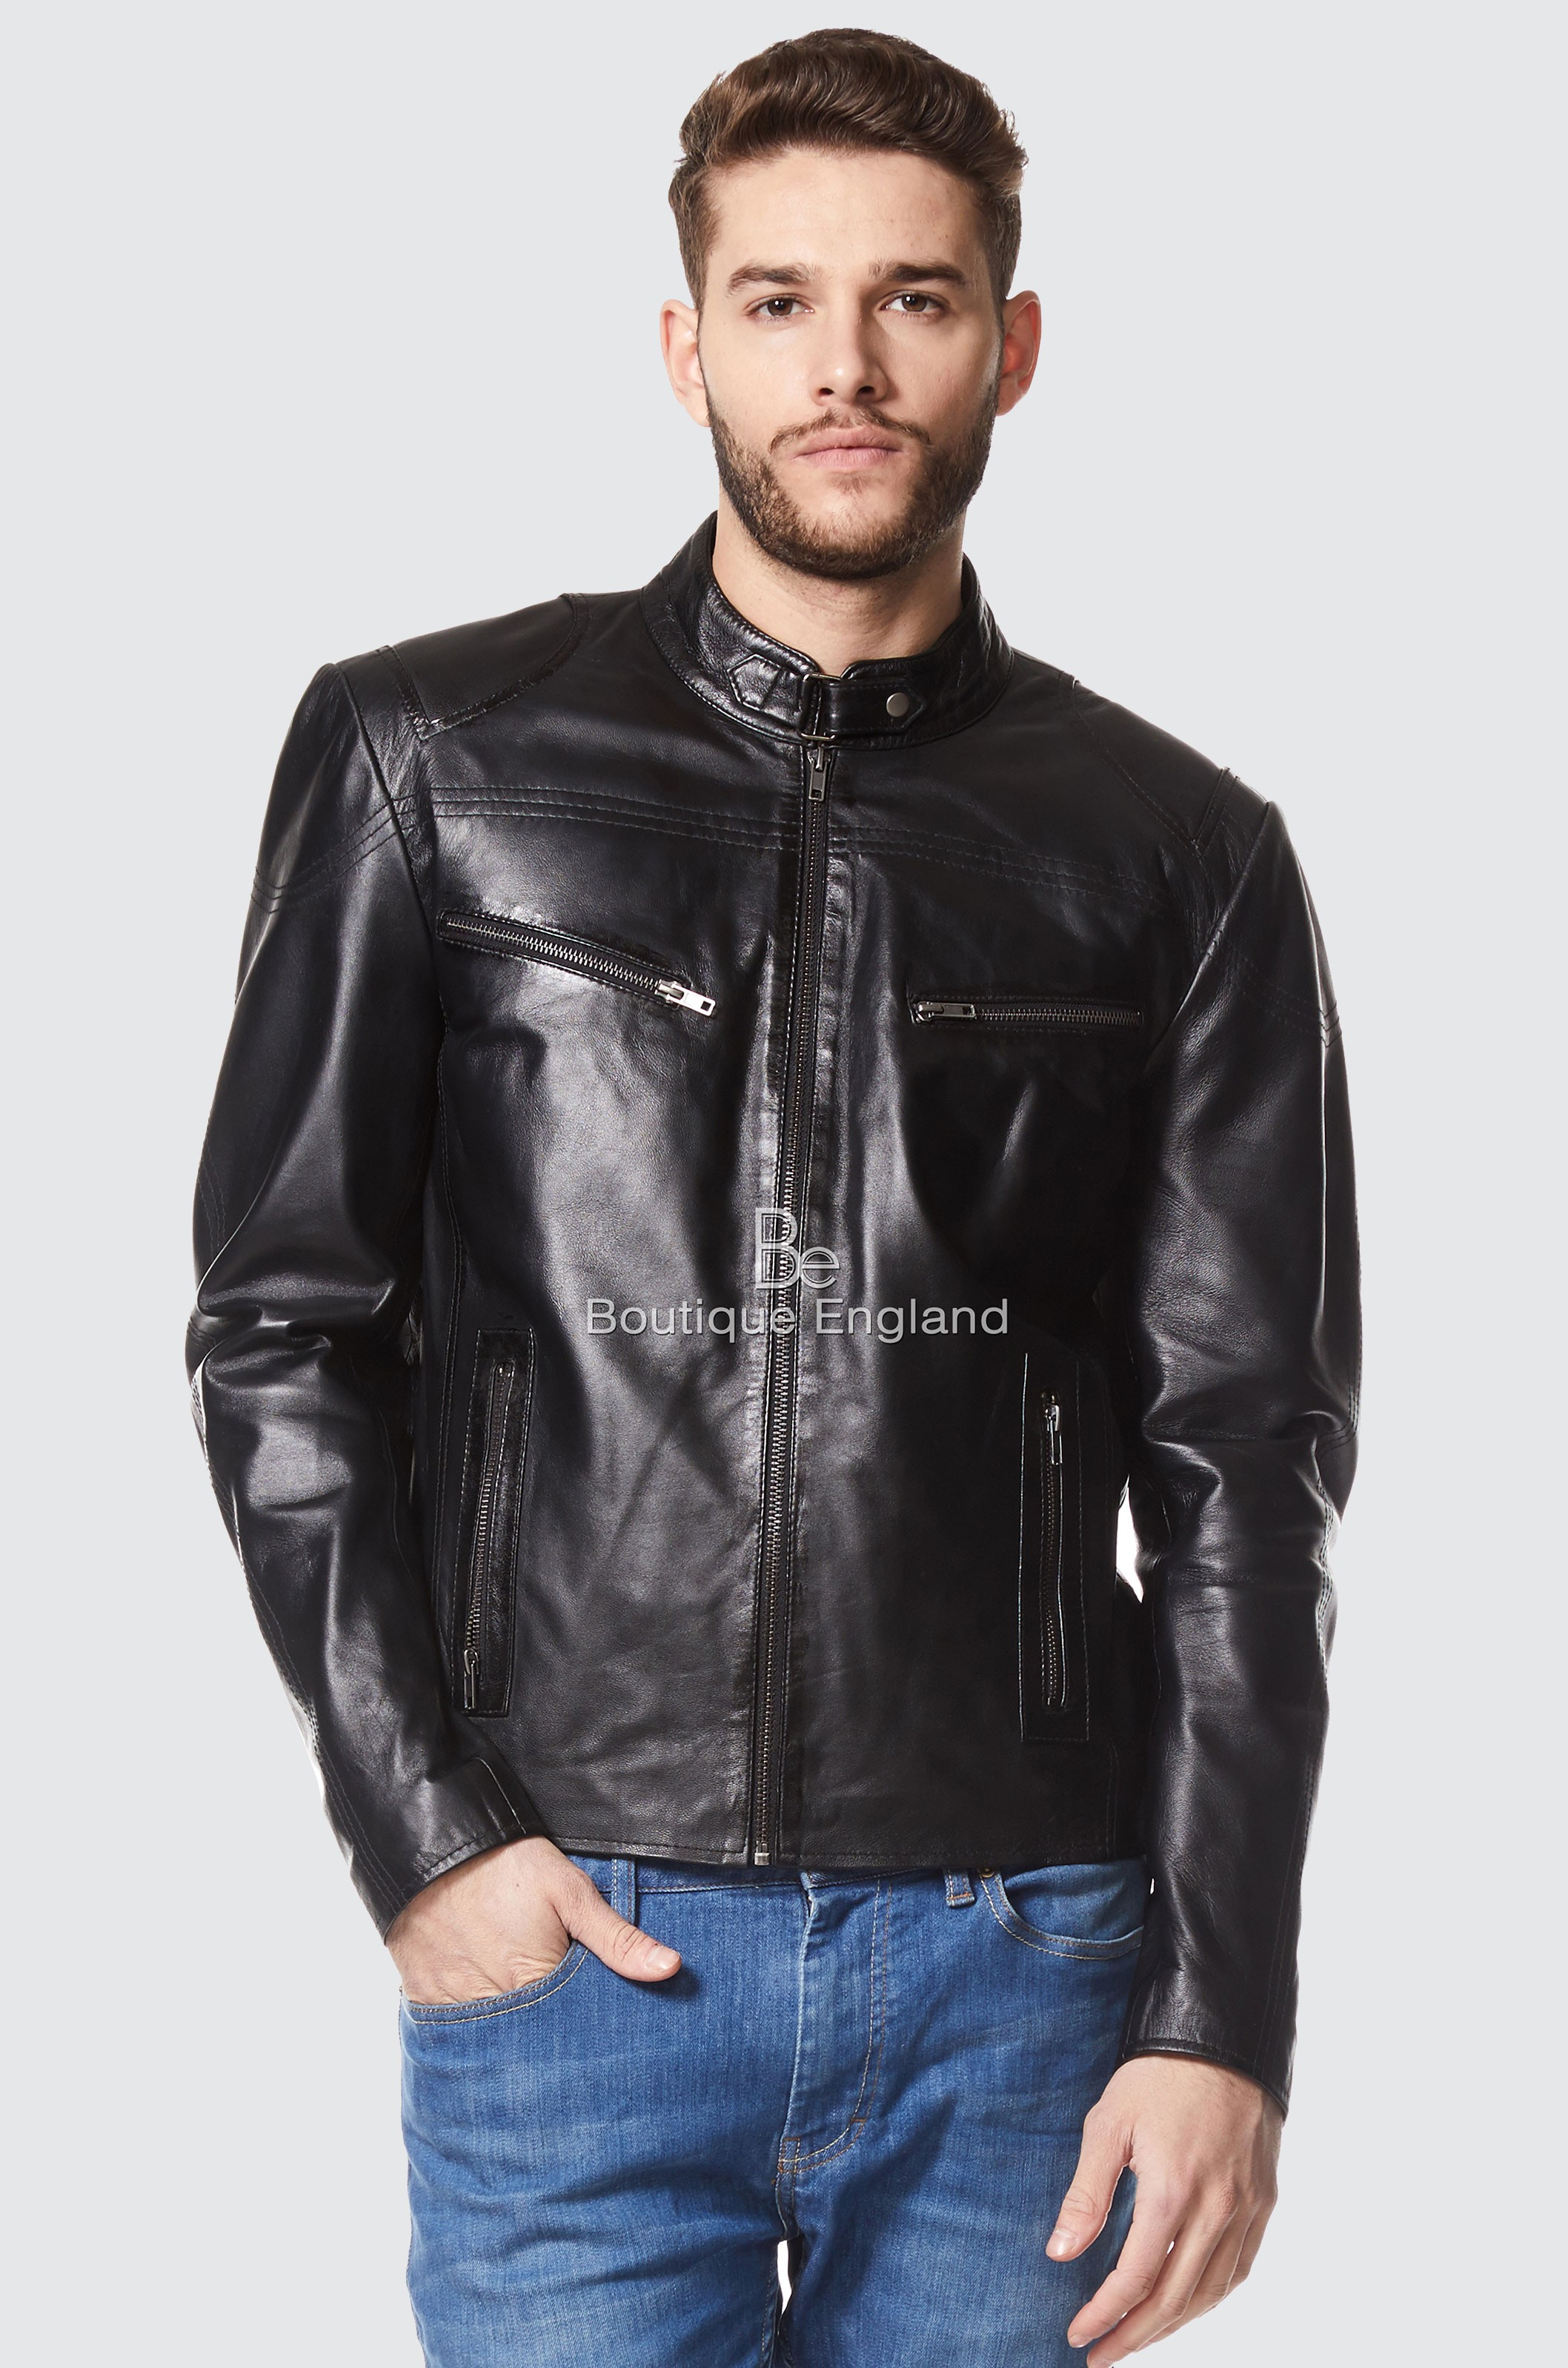 Mens Leather Jacket Black Cool Retro Motorcycle Style   100% REAL LEATHER SR-02